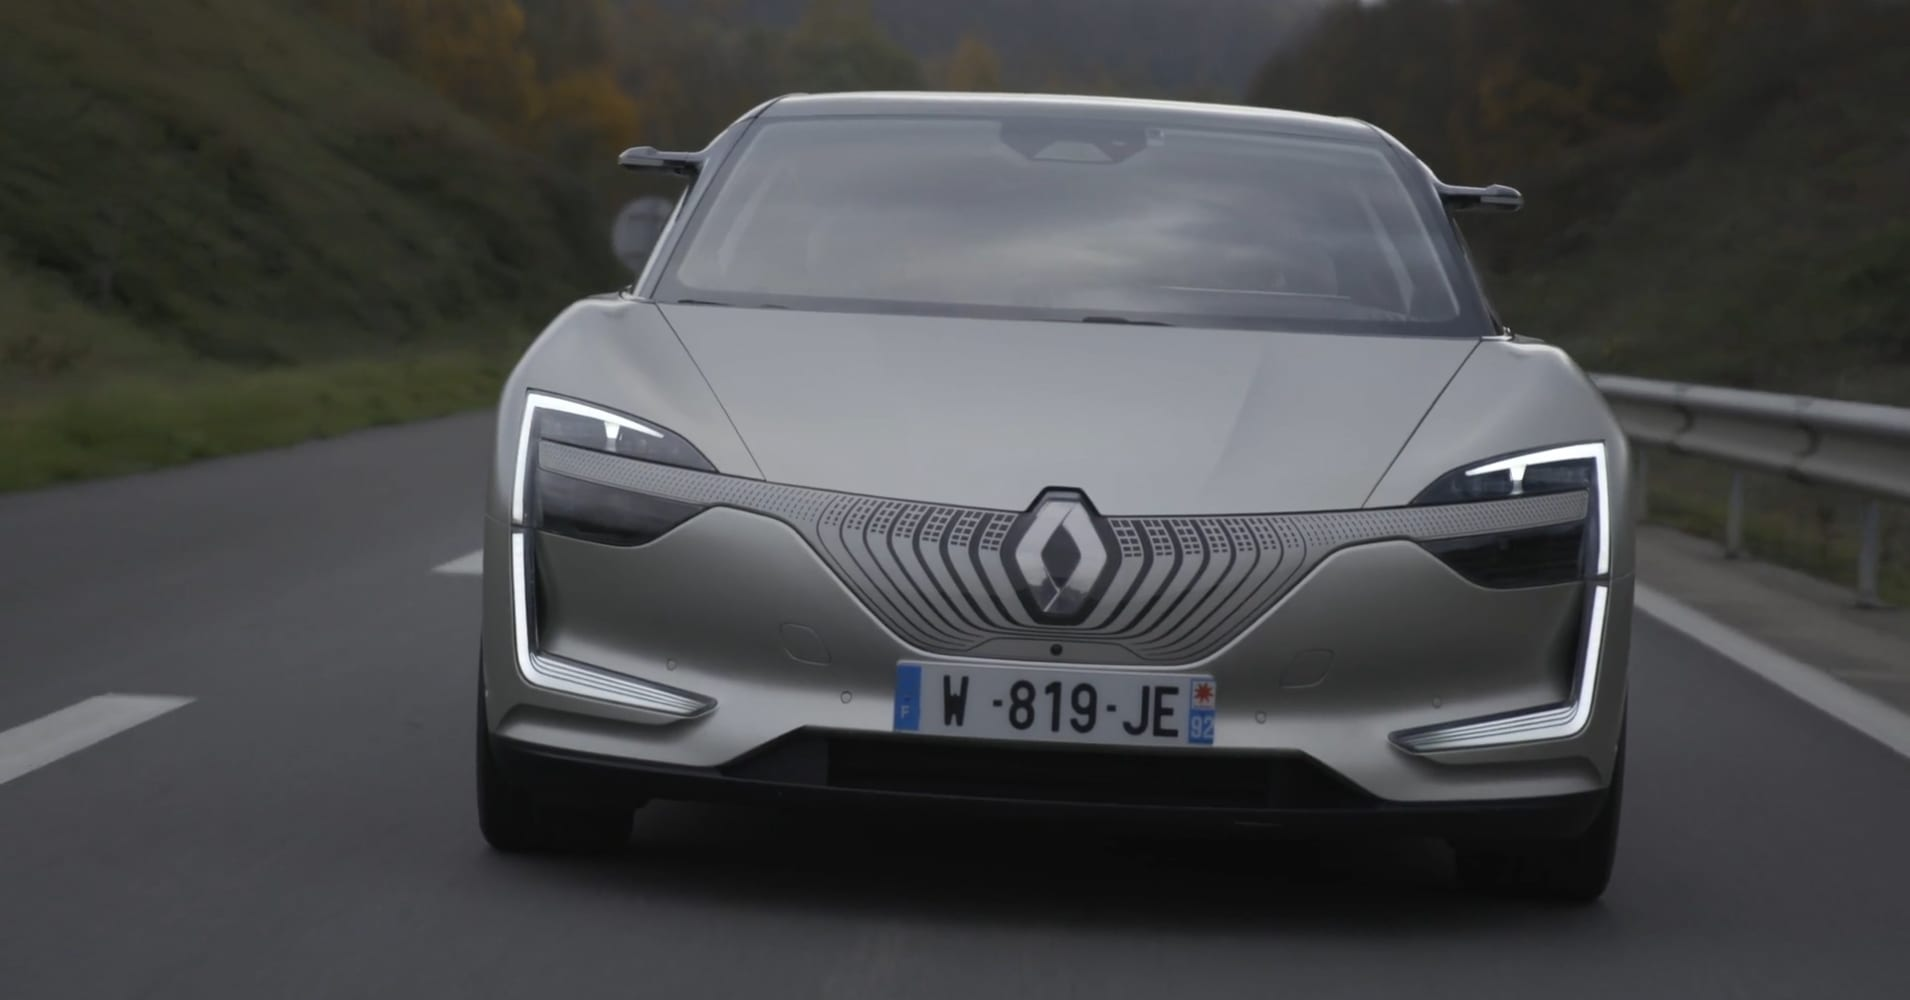 Renault Shows Lsymbioz Level 4 Autonomous Driving Demo Car